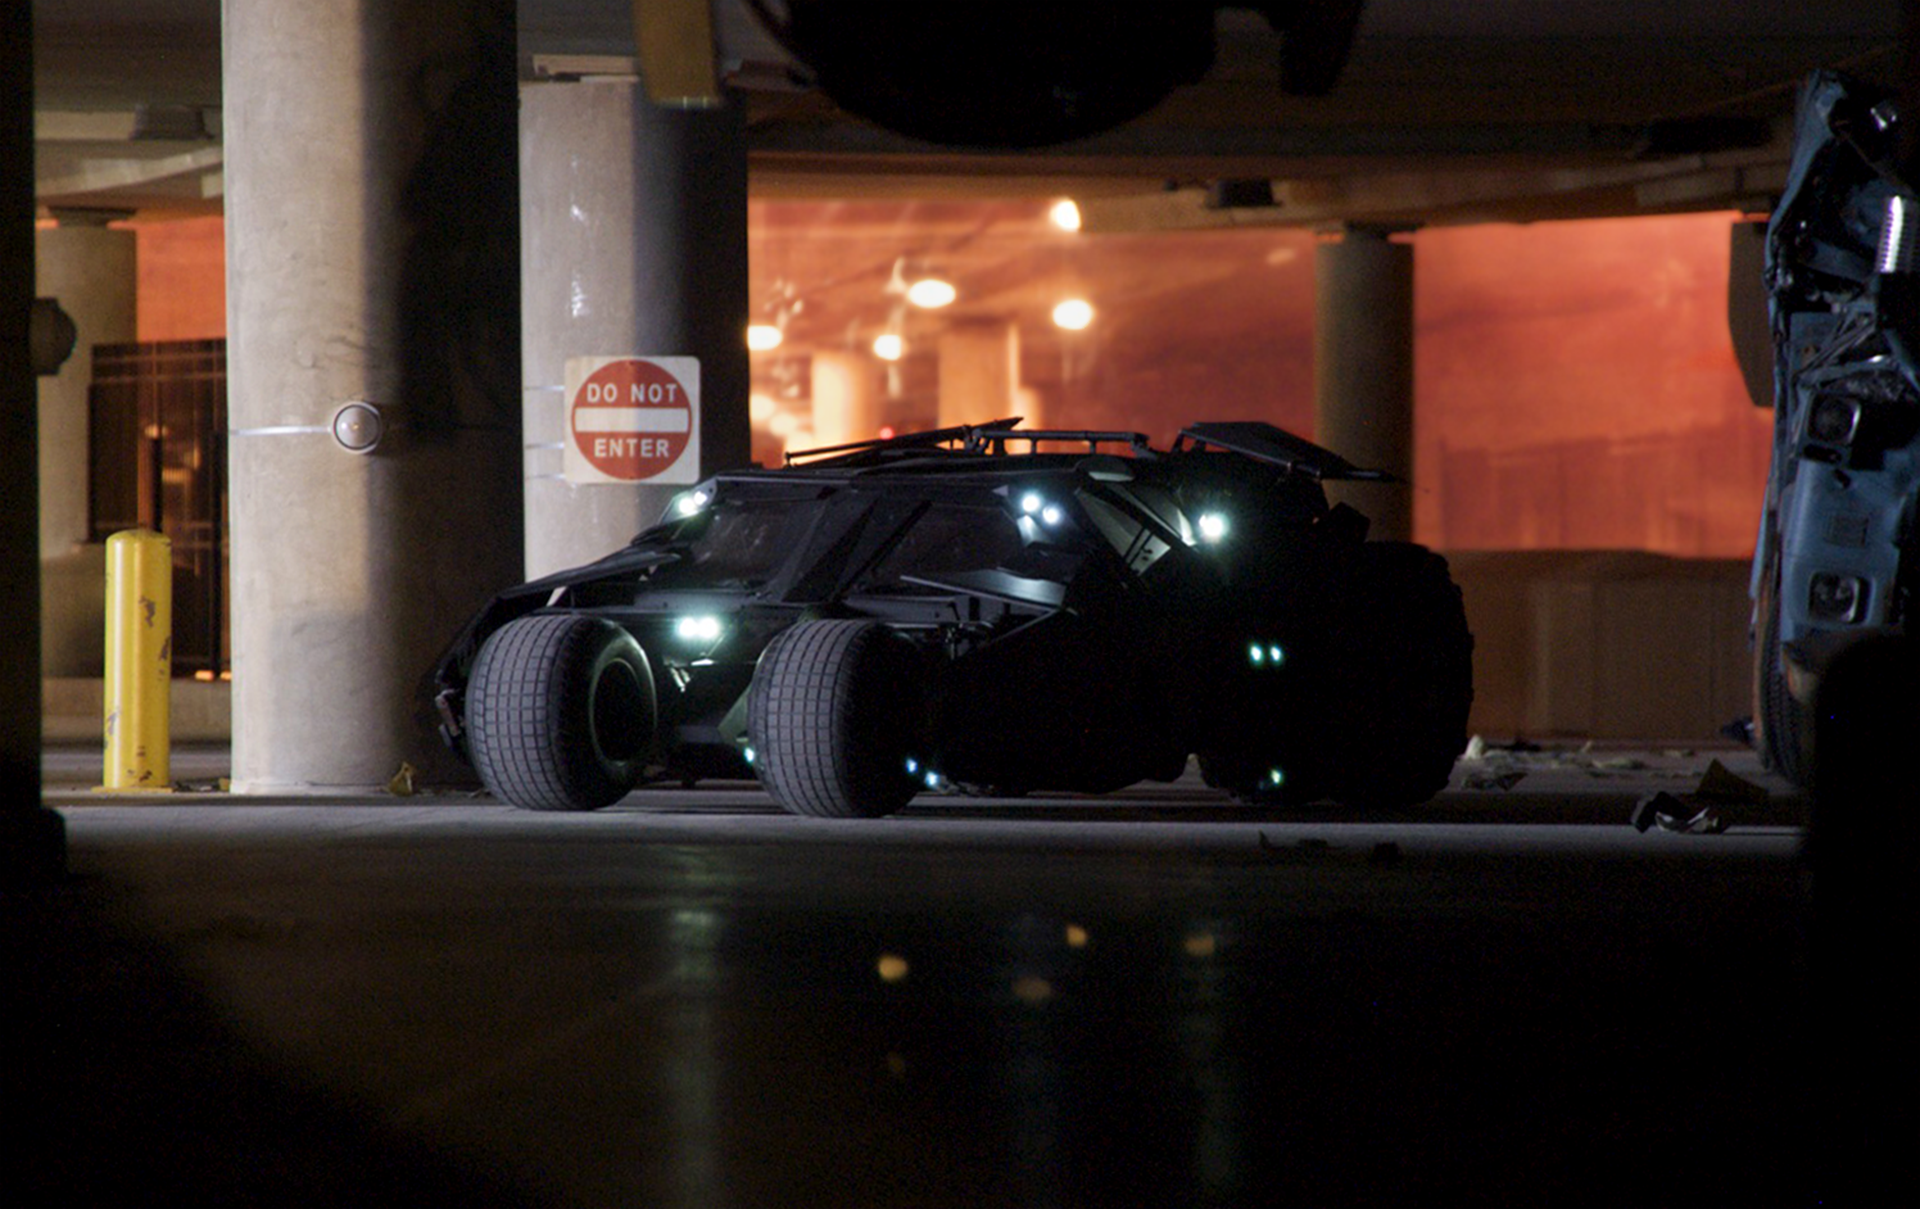 dark_knight_batmobile_hero.png